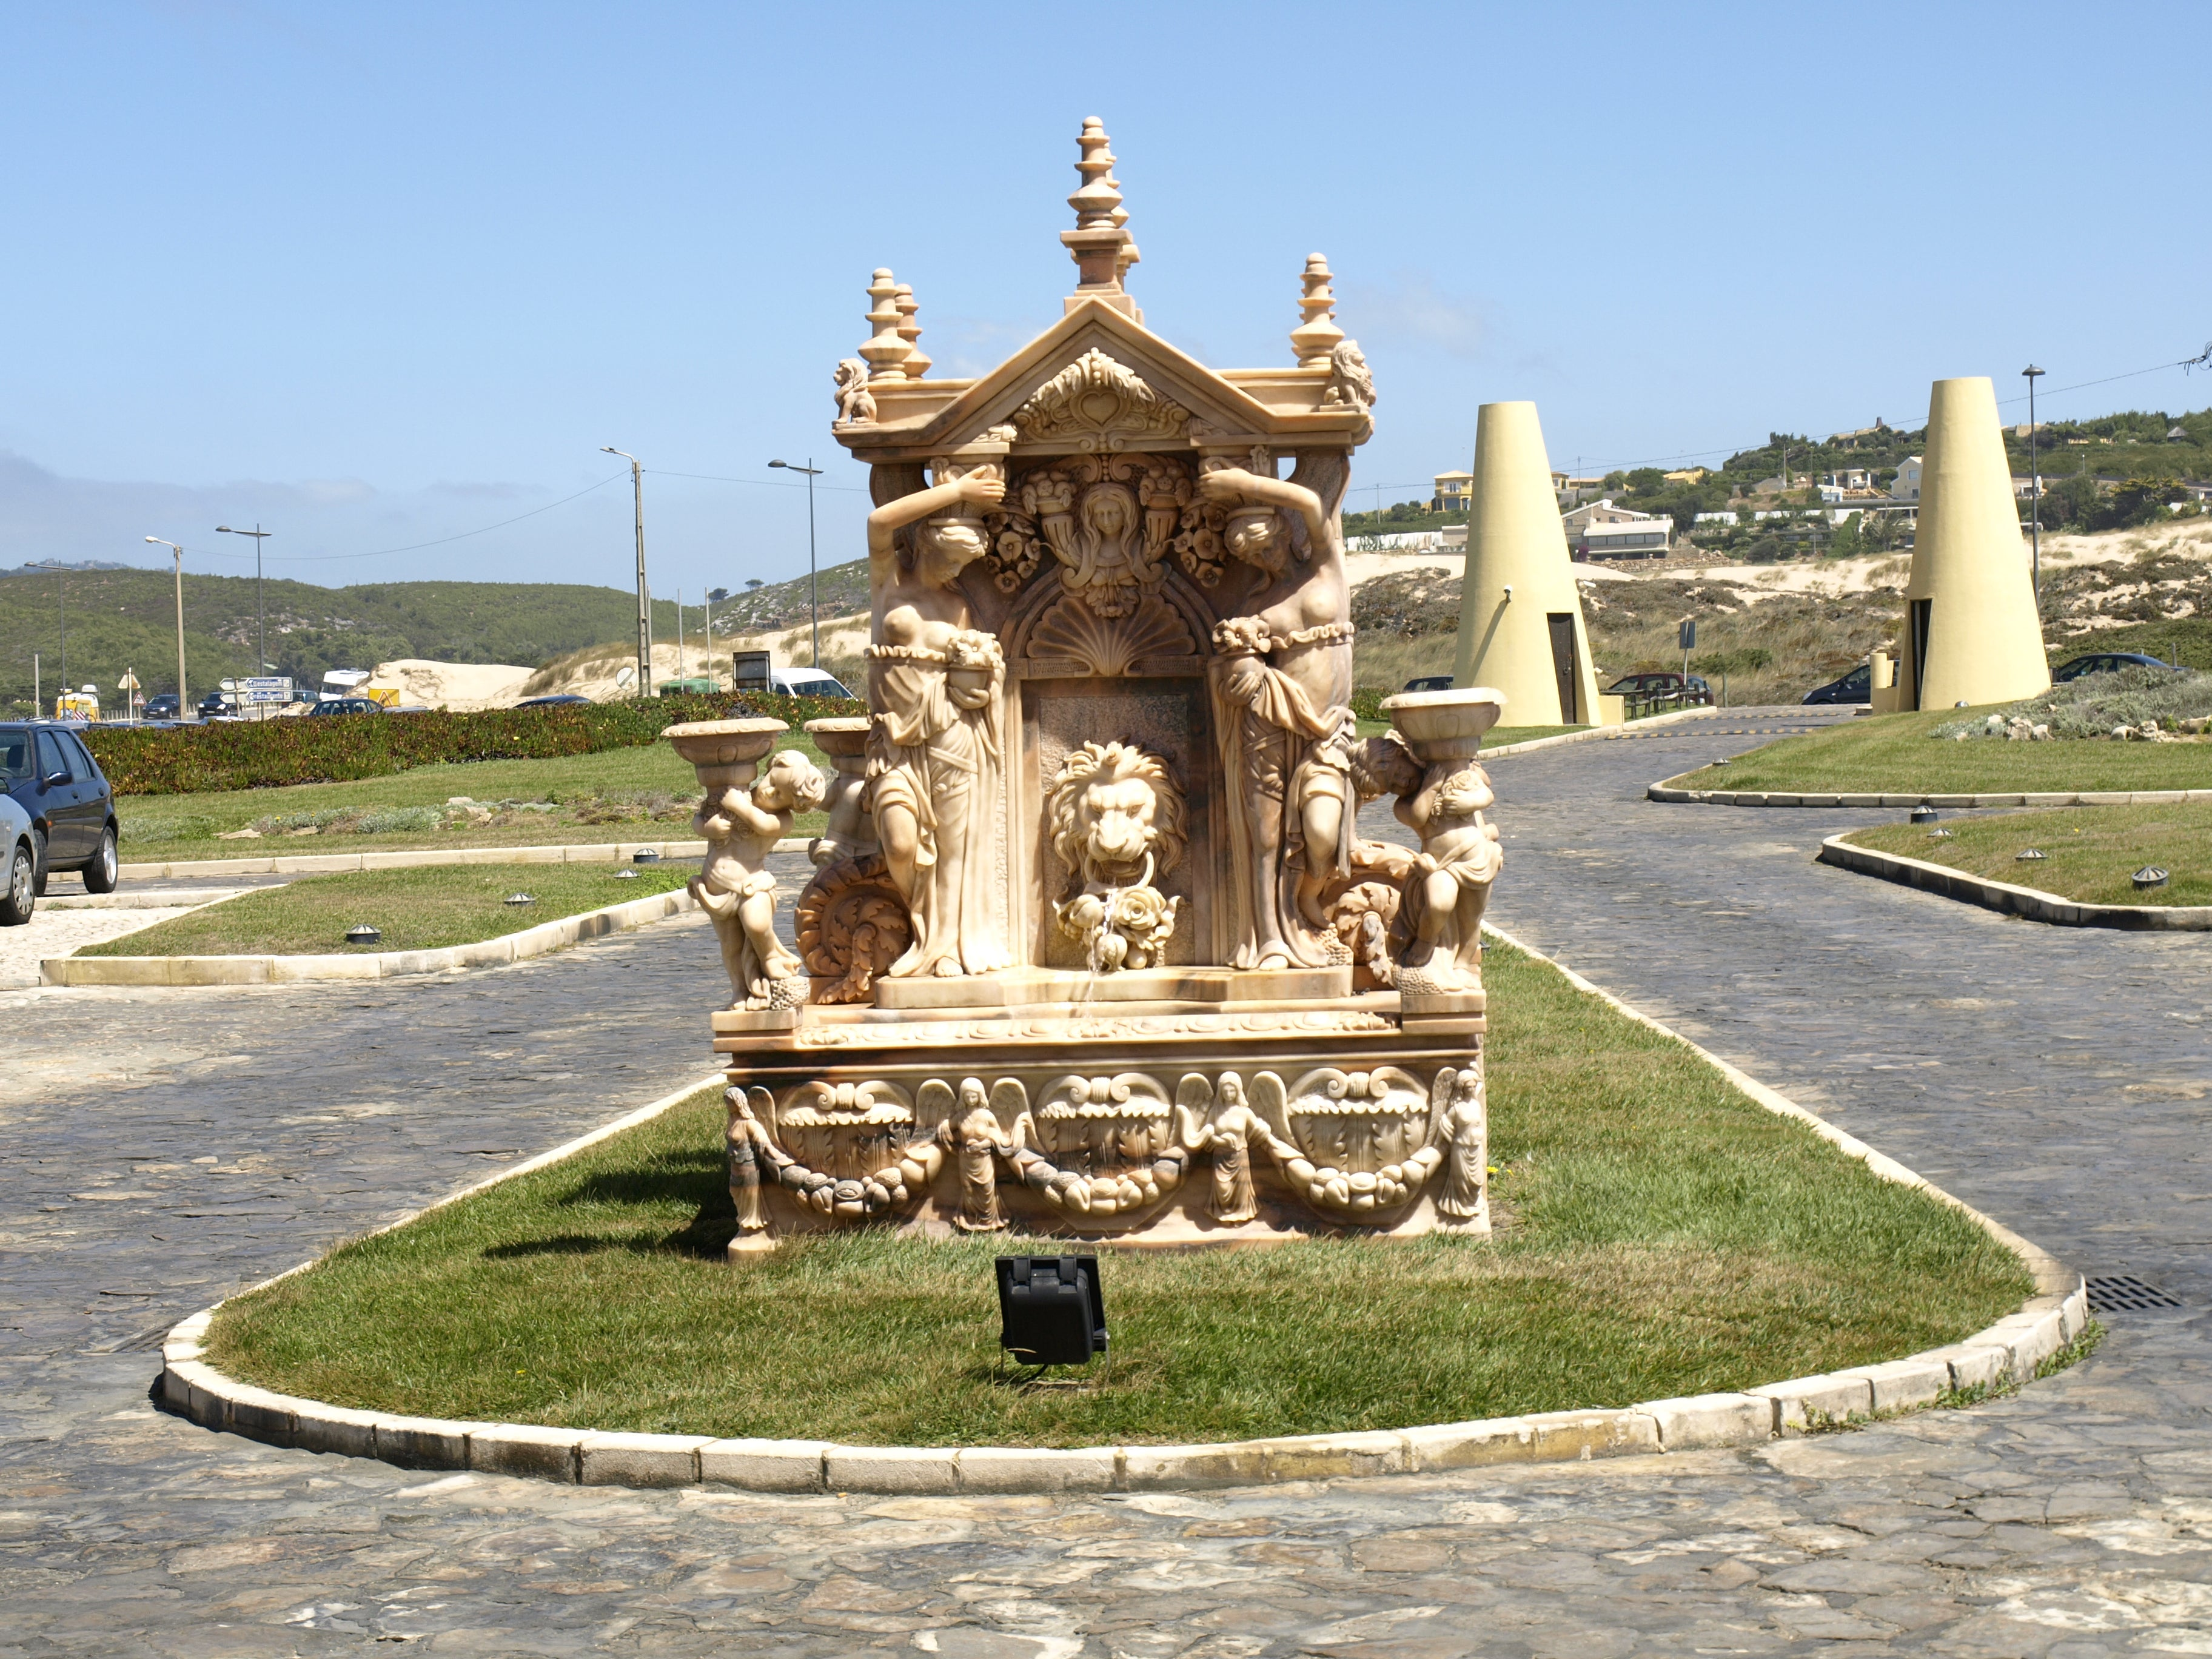 Plaza en Playa do Guincho